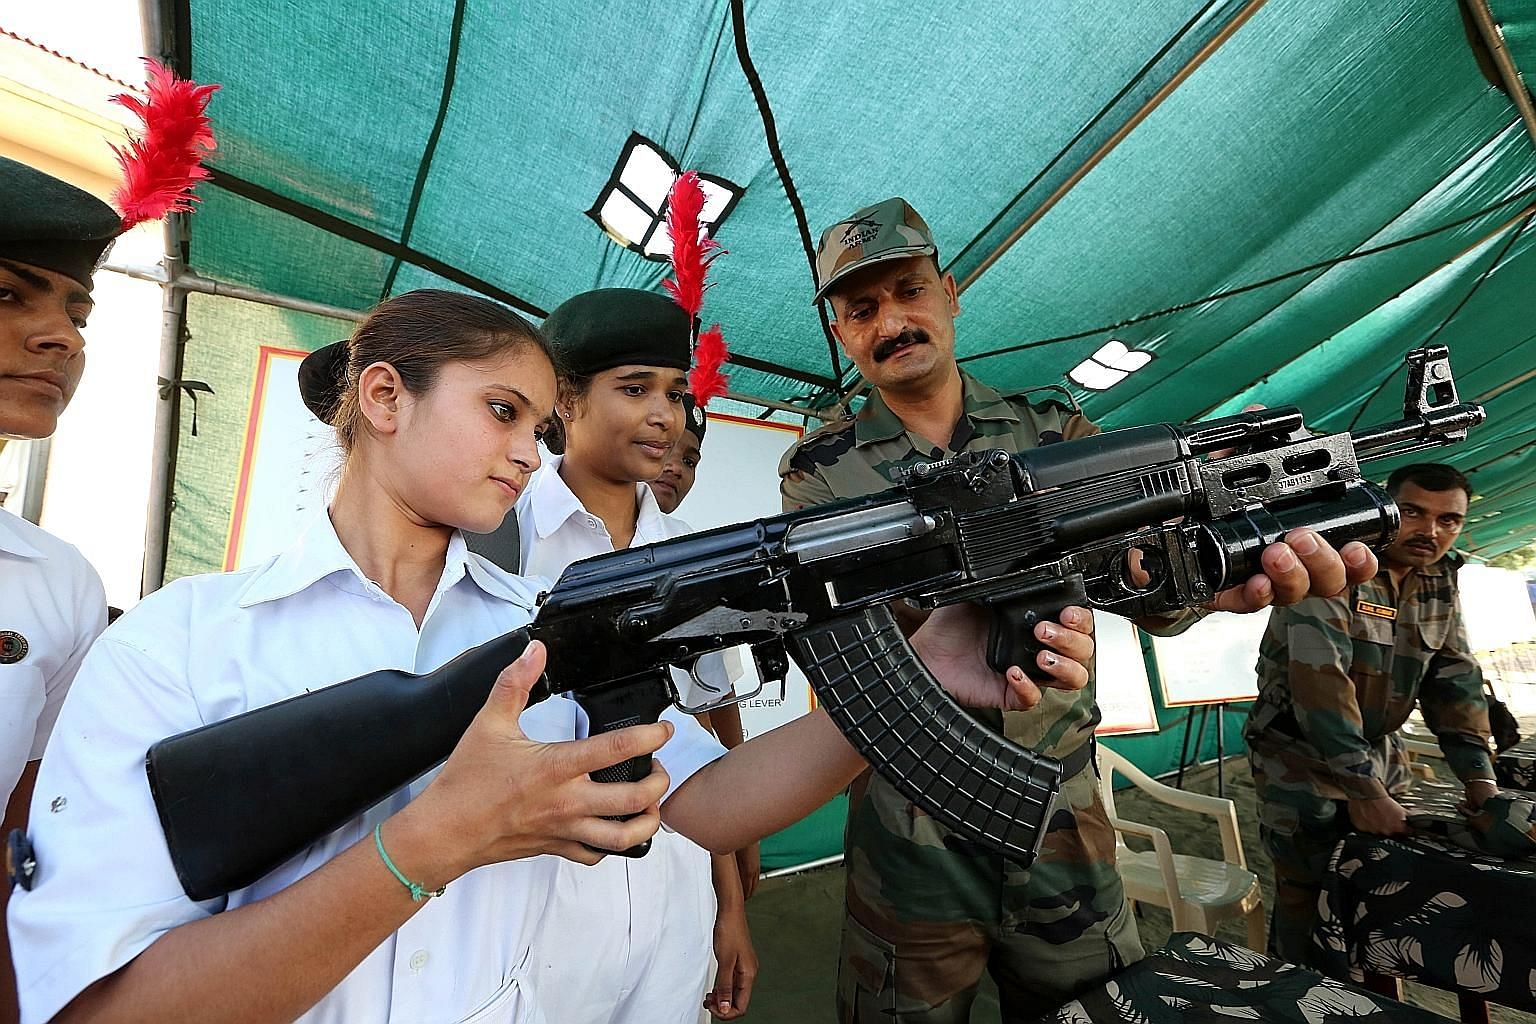 An Indian army soldier explaining how an AK-47 assault rifle works to National Cadet Corps members during Parakram Parv celebrations in the central Indian city of Bhopal on Sept 29. The celebrations mark the second anniversary of an attack by the Ind